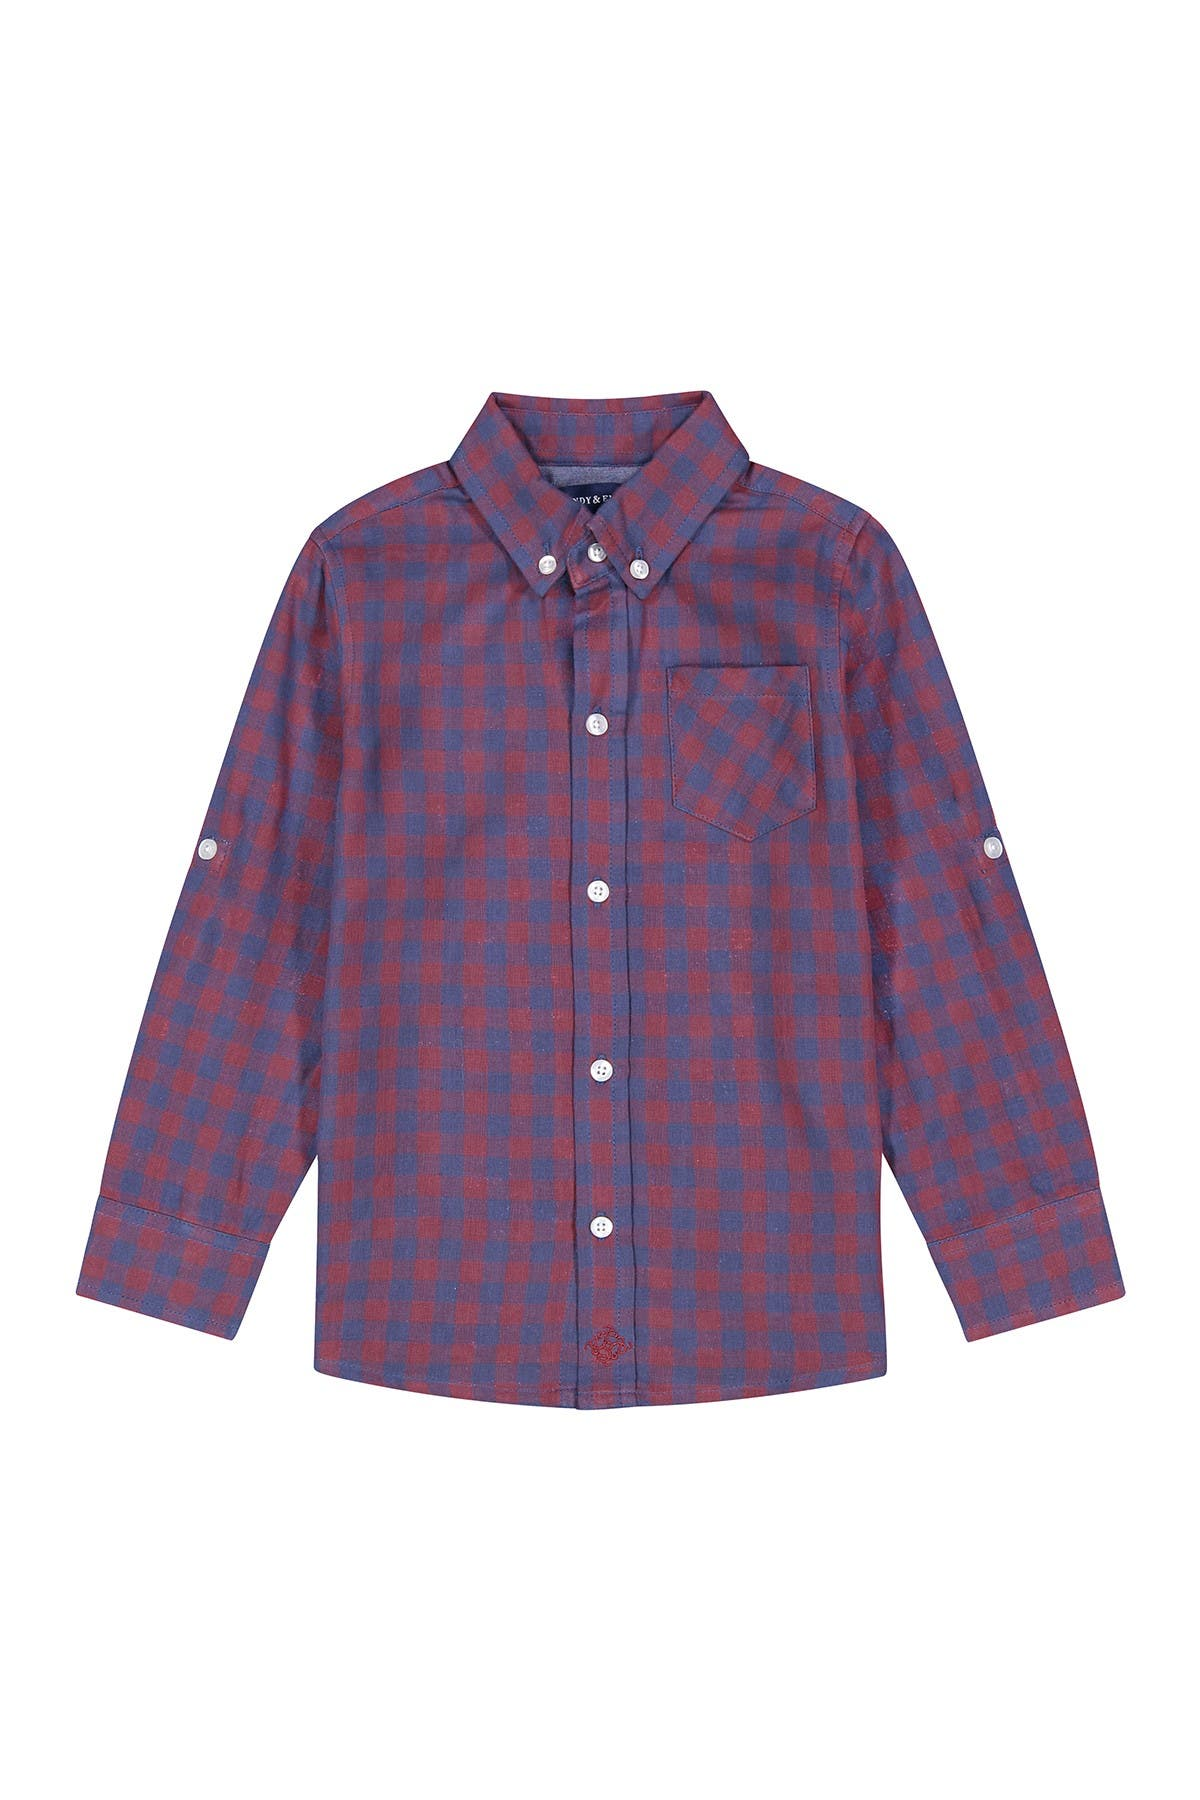 Image of Andy & Evan Double Sided Fabric Button Down Shirt